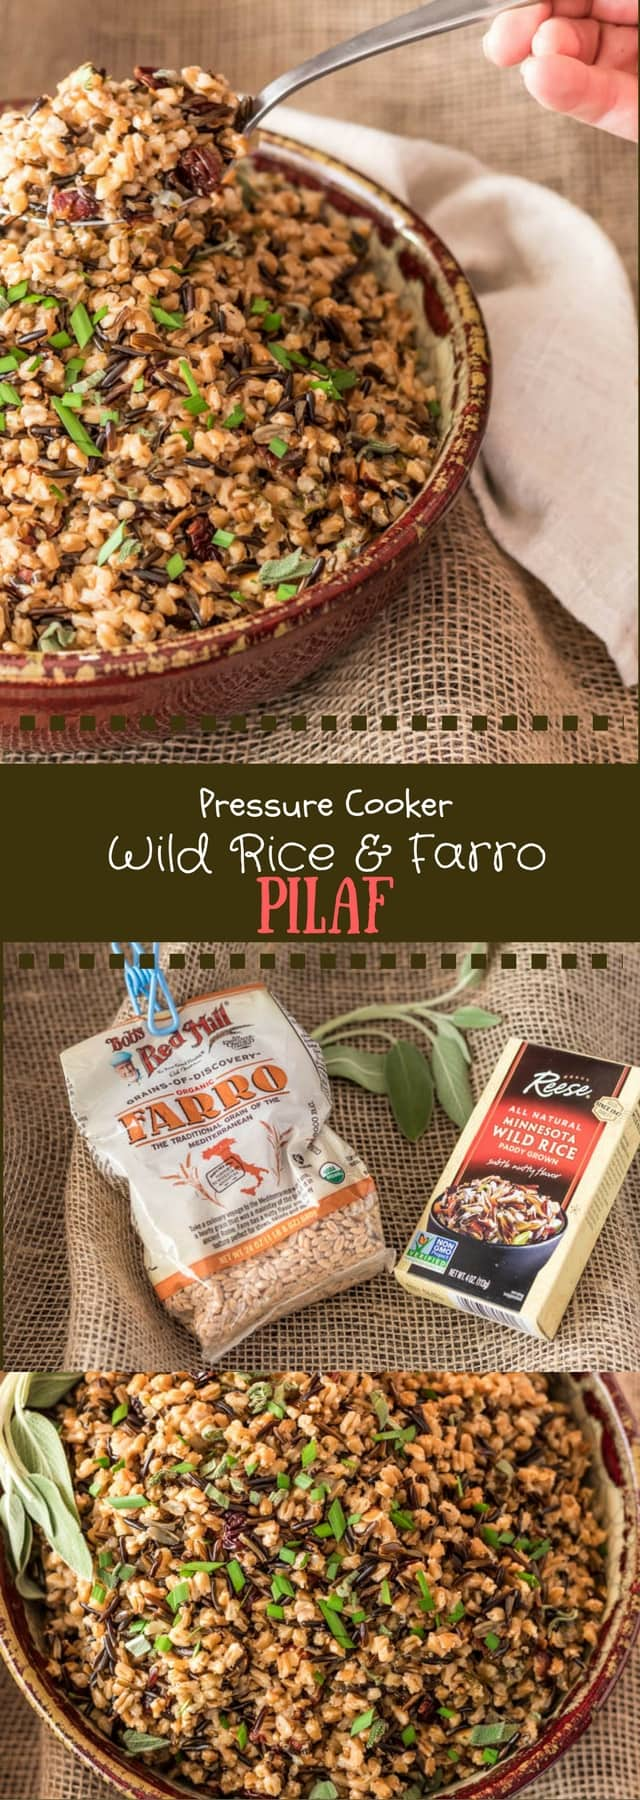 Pressure Cooker Wild Rice and Farro Pilaf photo collage